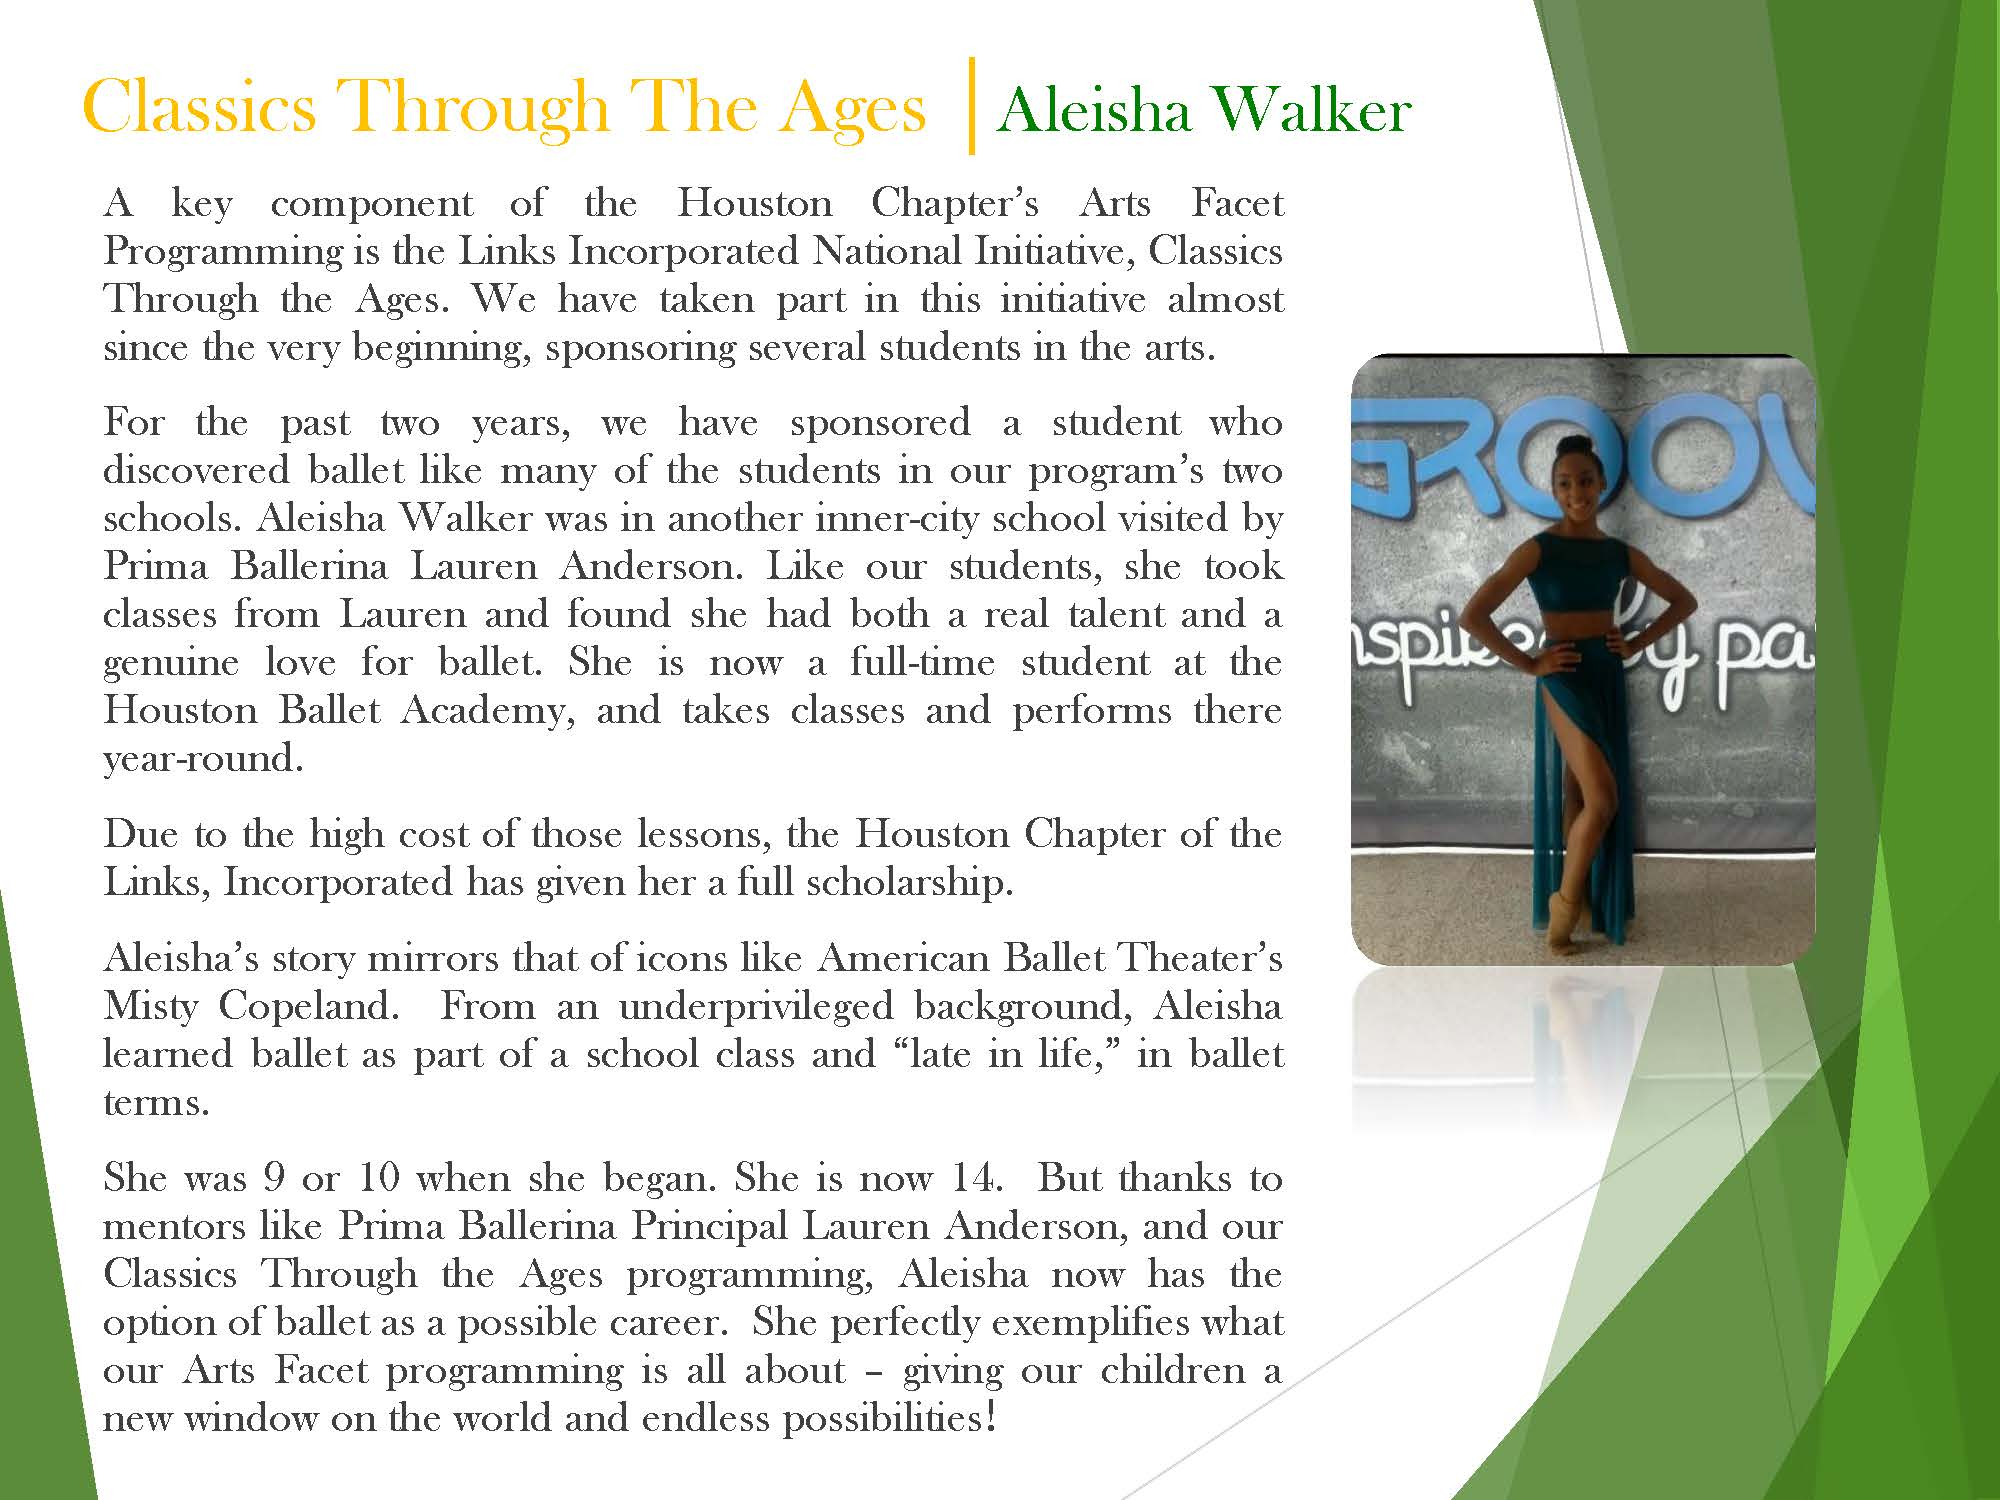 links-houston-chapter-arts-facet-links-to-artspiration-program-consideration-for-best-practice-additional-info-april-2016_page_11